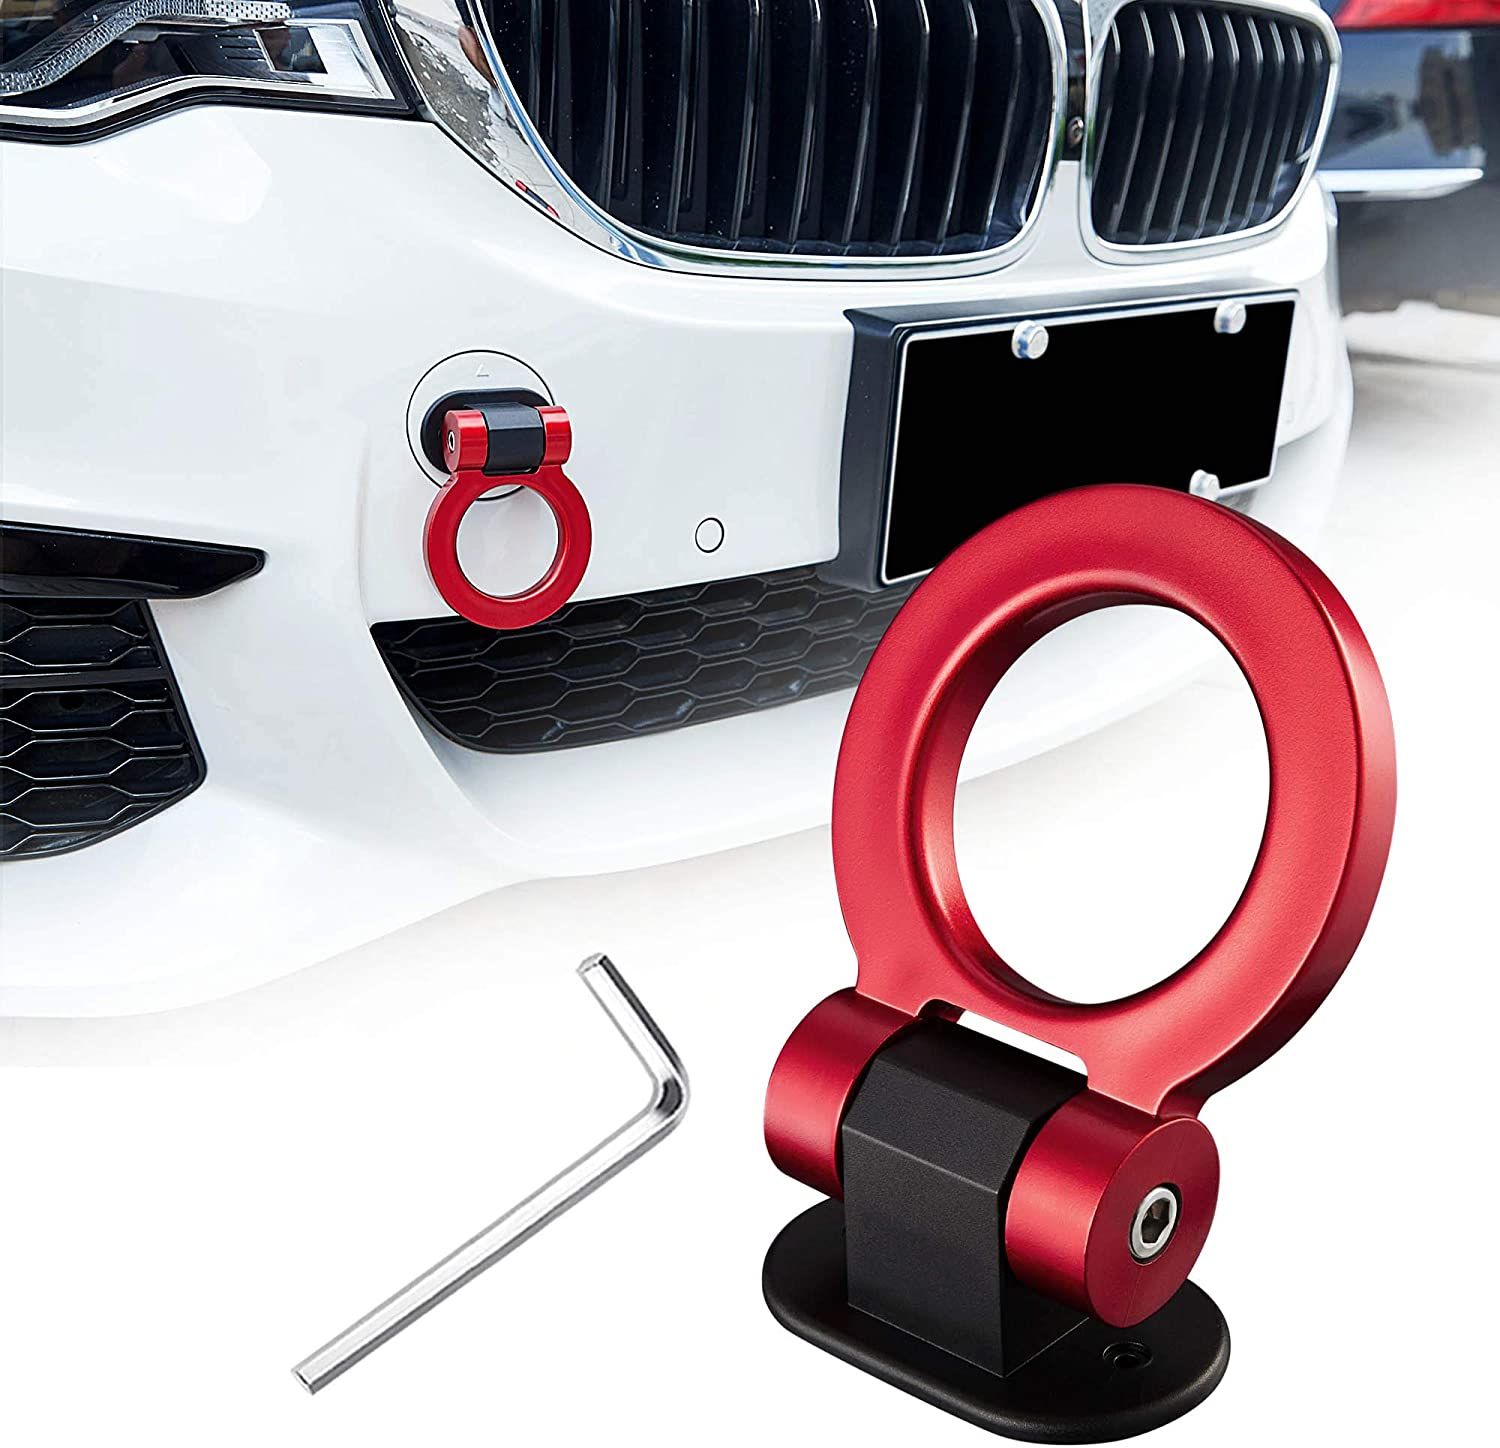 TOMALL Tow Hook Kit Red Car Decorations Sticker Car Decor Bumper for Auto Exterior Accessories (ONLY Decoration)